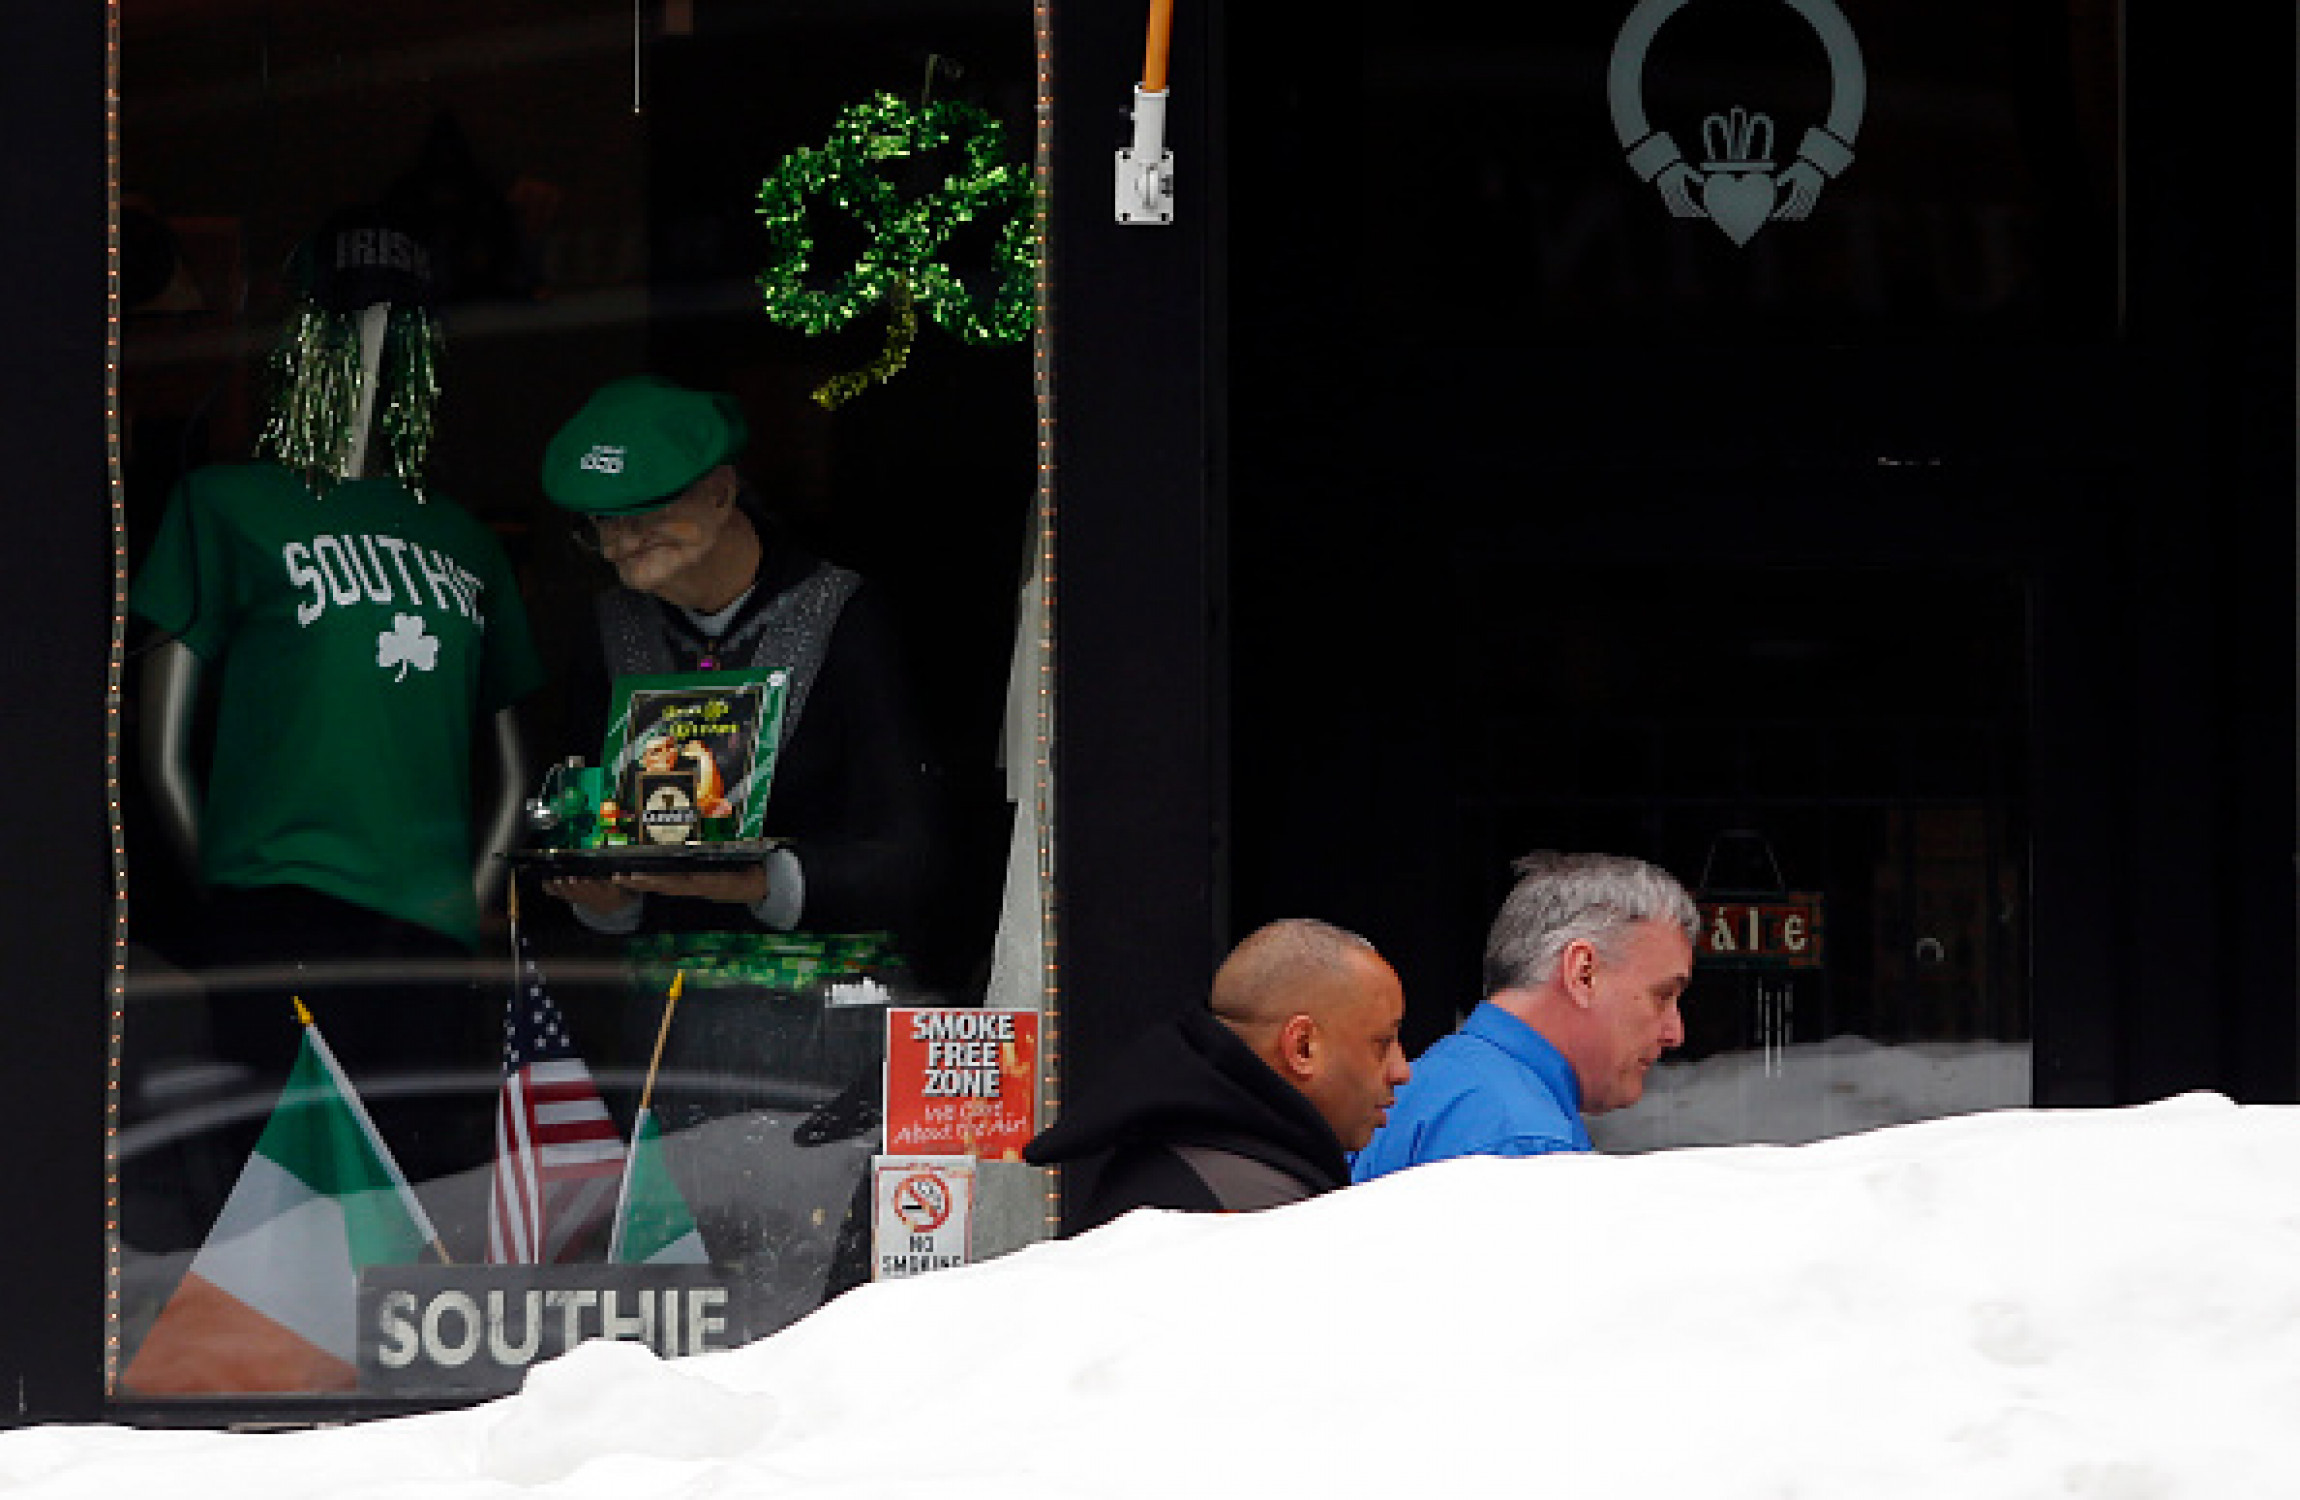 A snowy St. Patrick's Day in Boston in 2015.                     Image Boston Globe  Getty Images